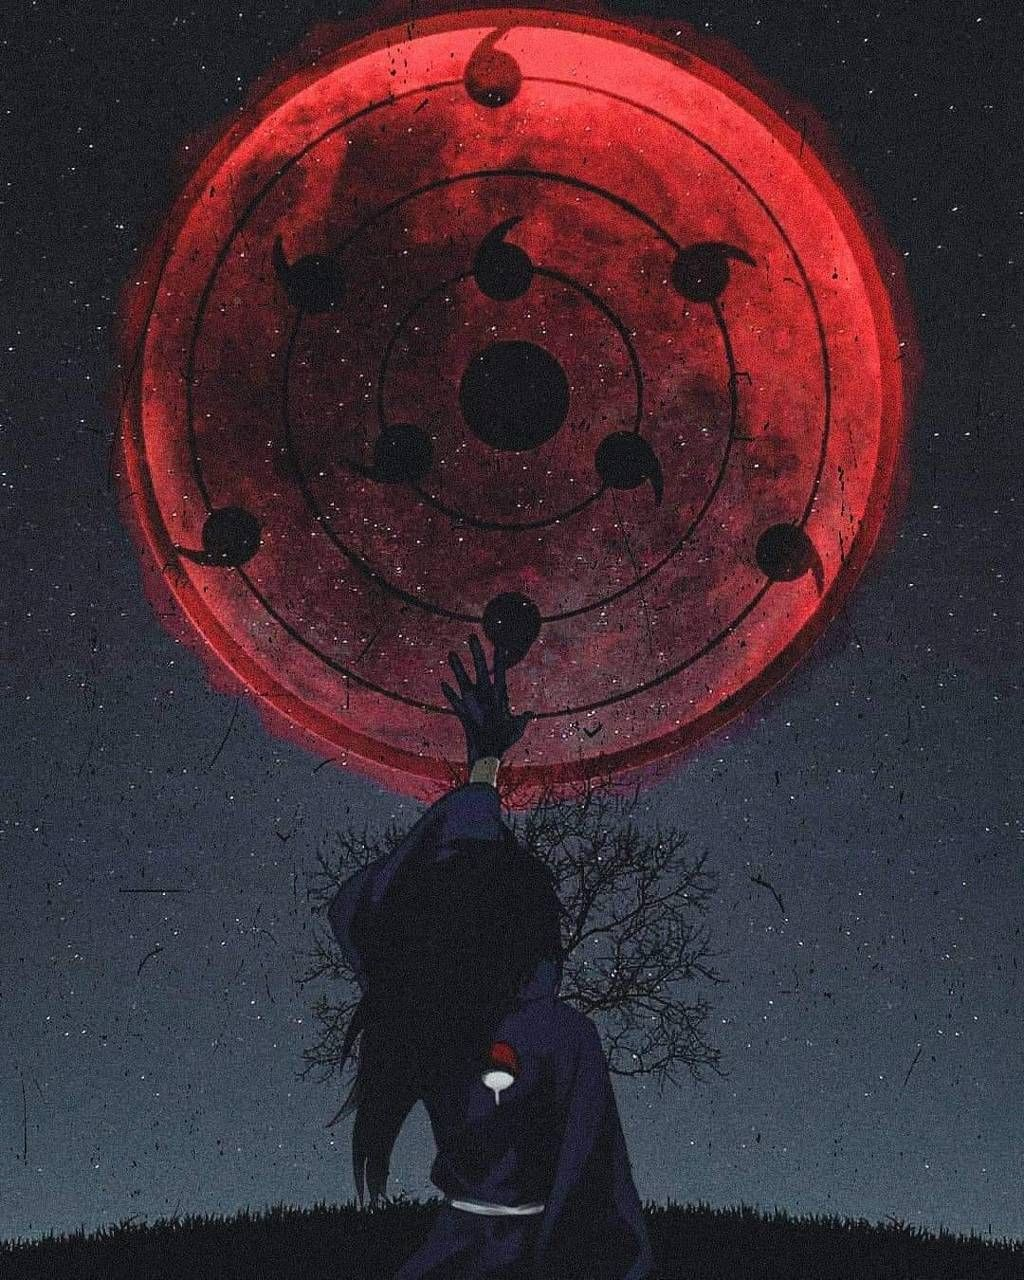 Download Naruto Madara Wallpaper By Xerox45 3a Free On Zedge Now Browse Millions Of Popular Madara Naruto Madara Wallpaper Naruto Shippuden Madara Uchiha